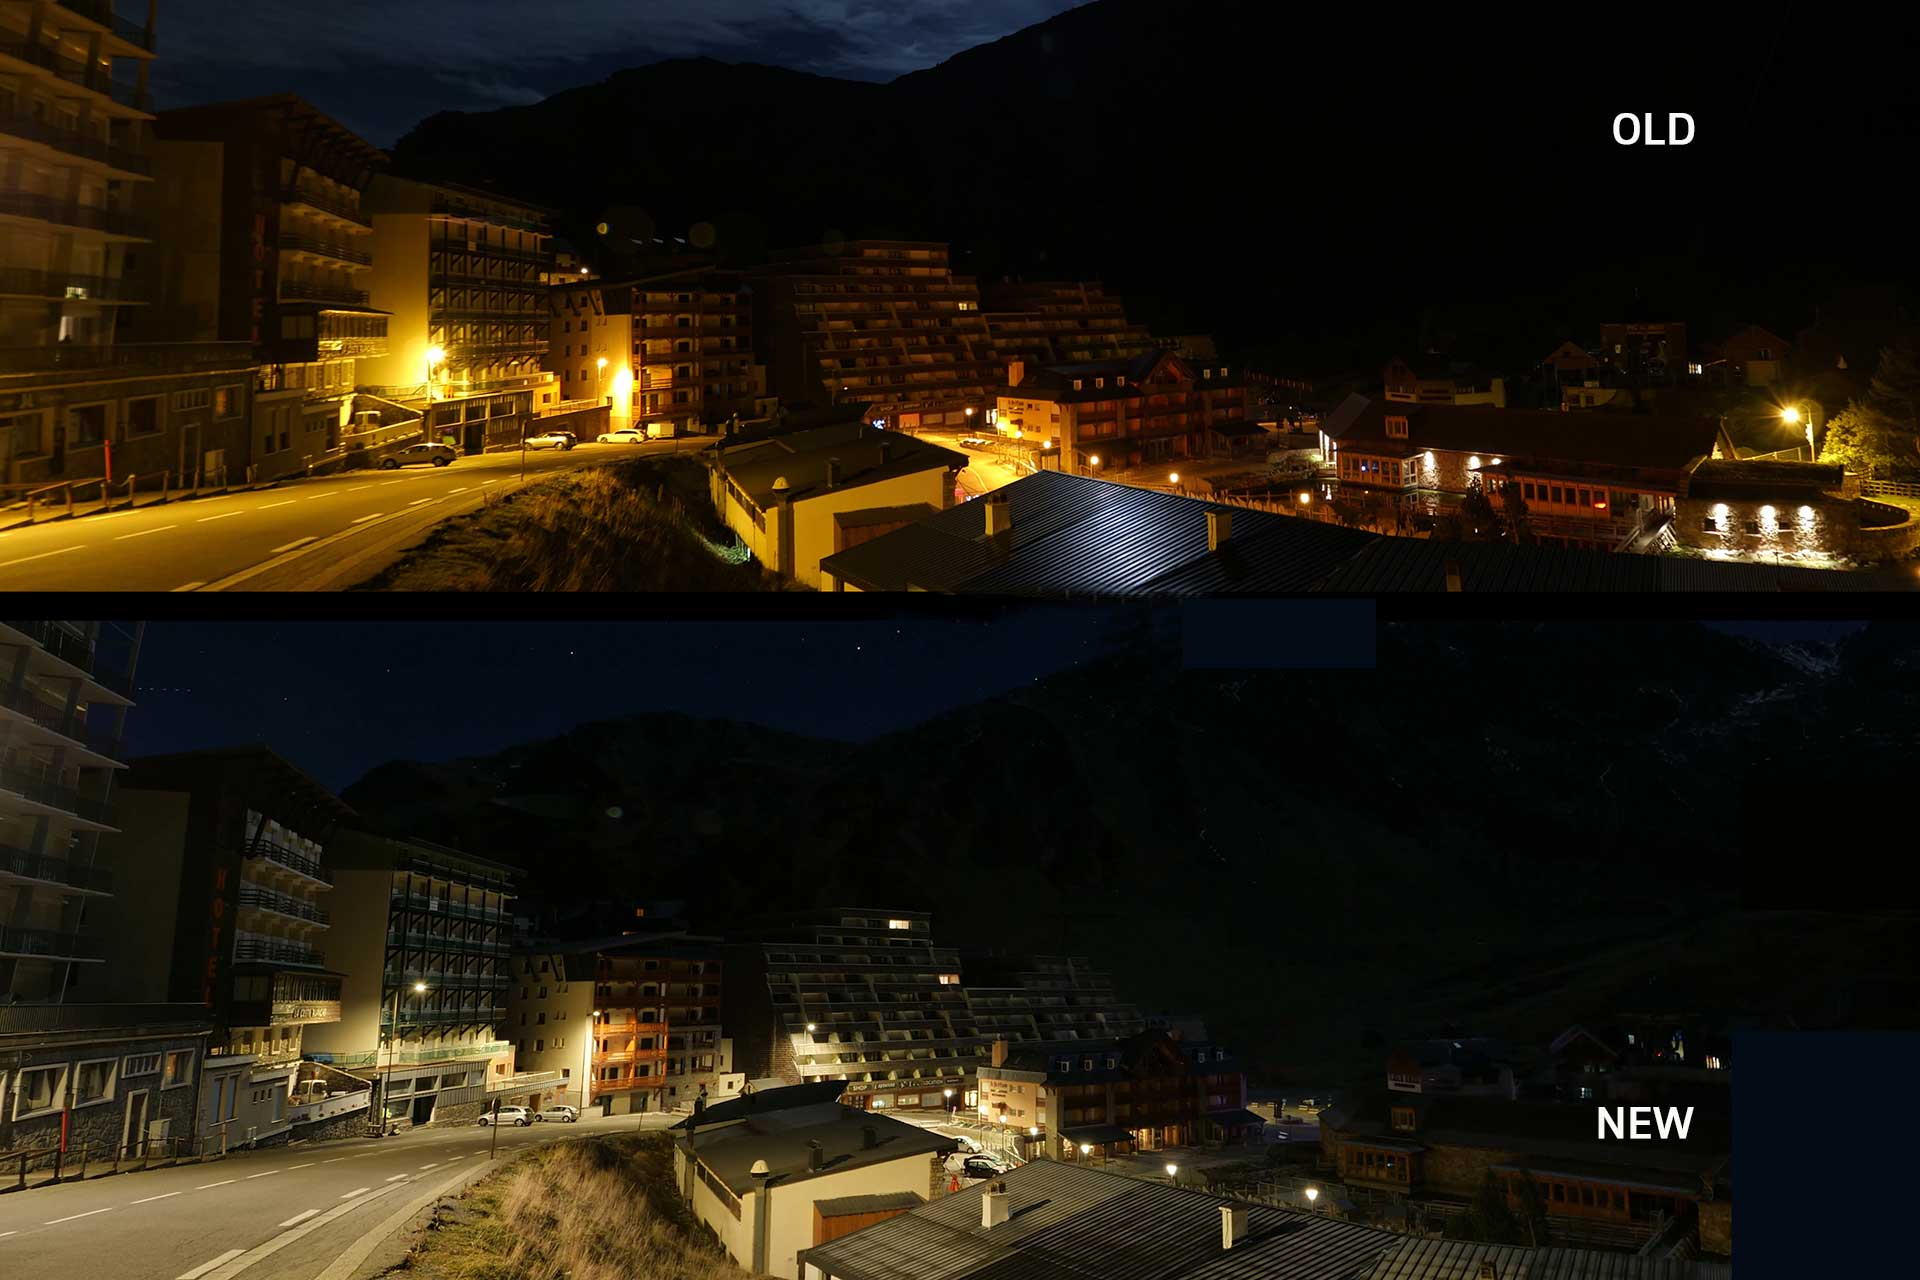 Schréder's smart lighting solution has improved visibility, reduced light pollution and cut energy consumption by 40% for La Mongie